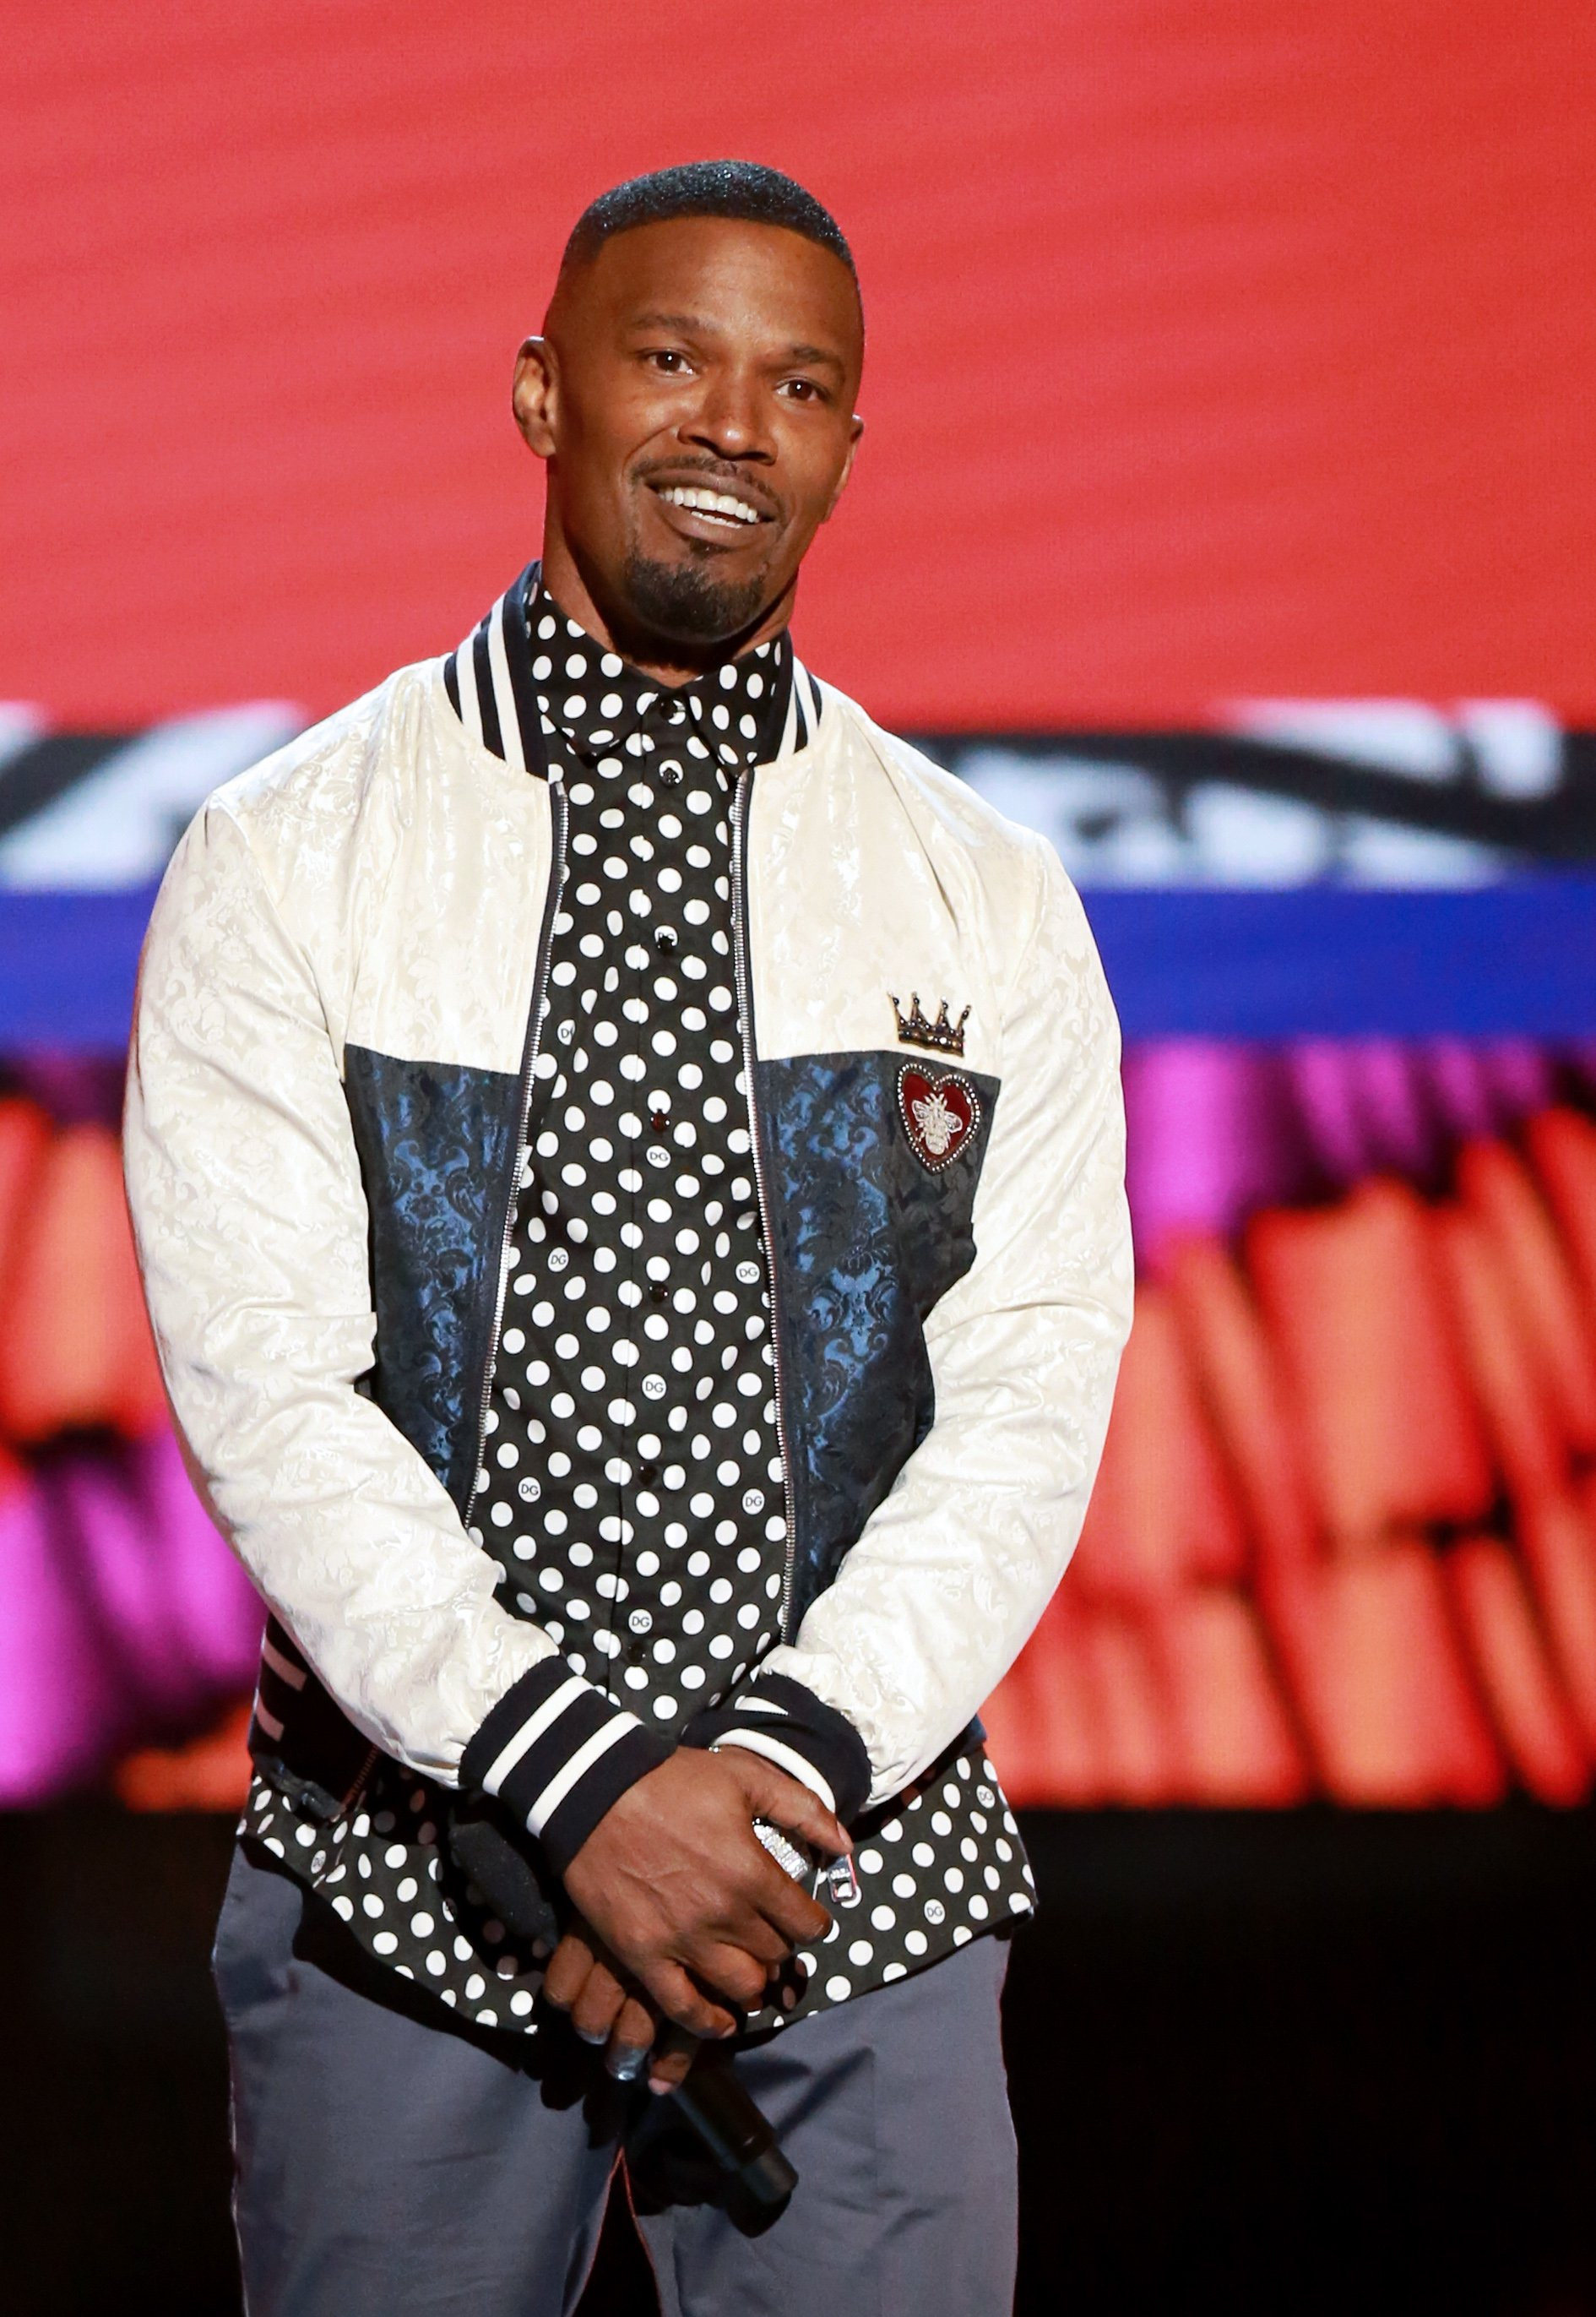 Jamie Foxx hosts the BET Awards in Los Angeles, California on June 24, 2018 | Photo: Getty Images